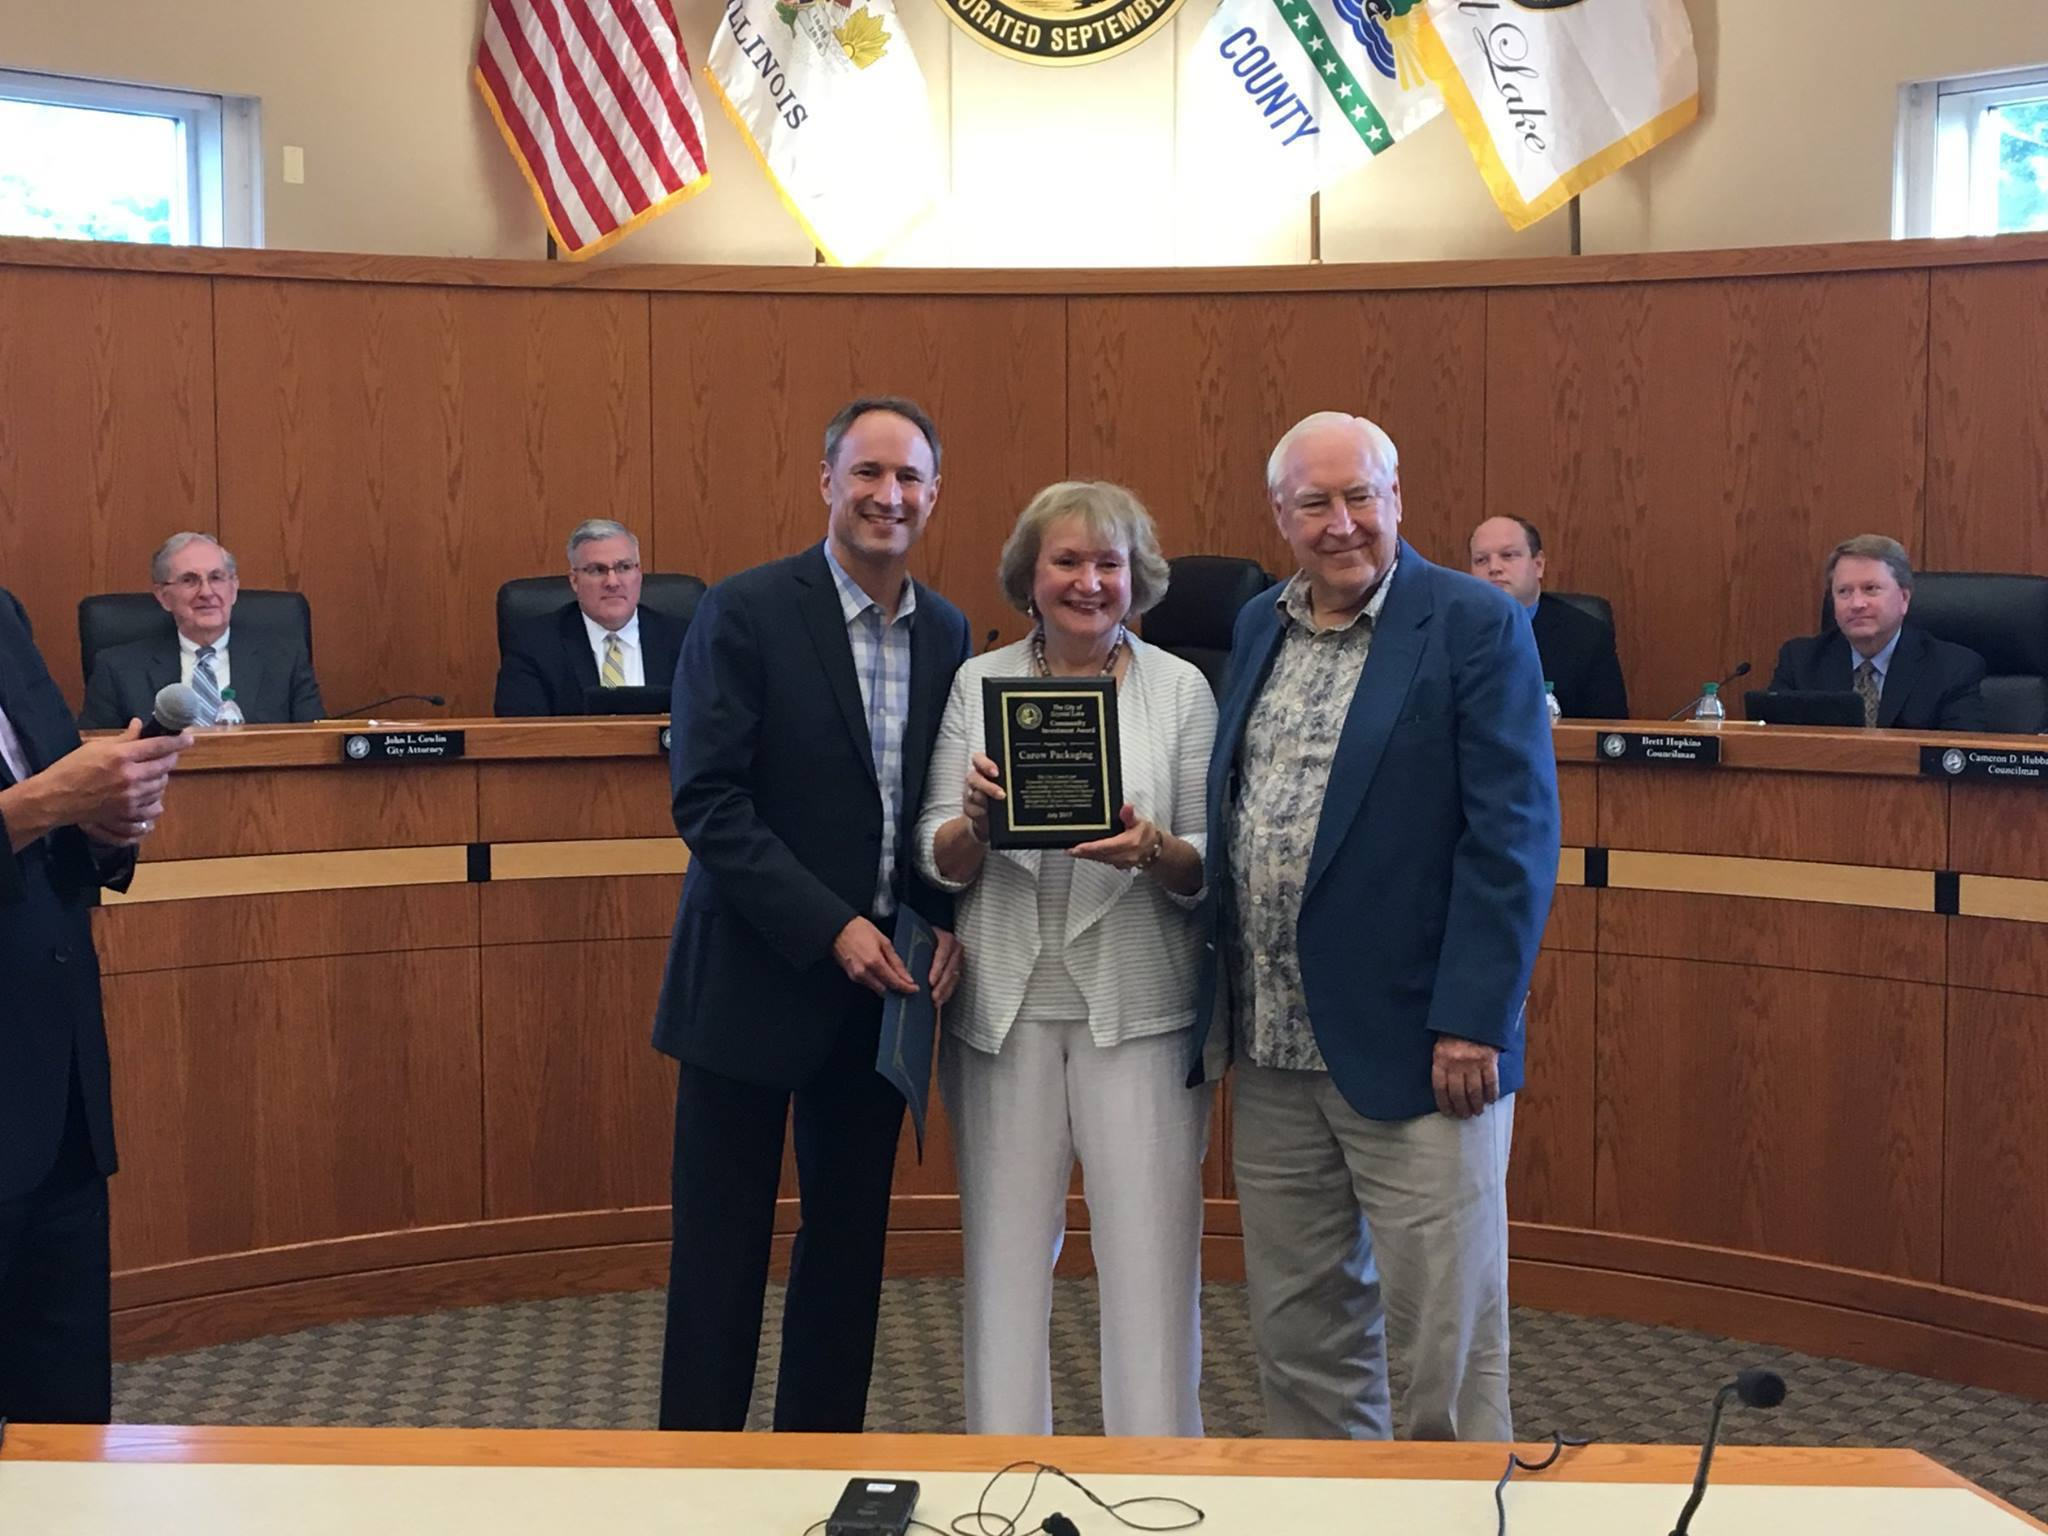 Carow city recognition